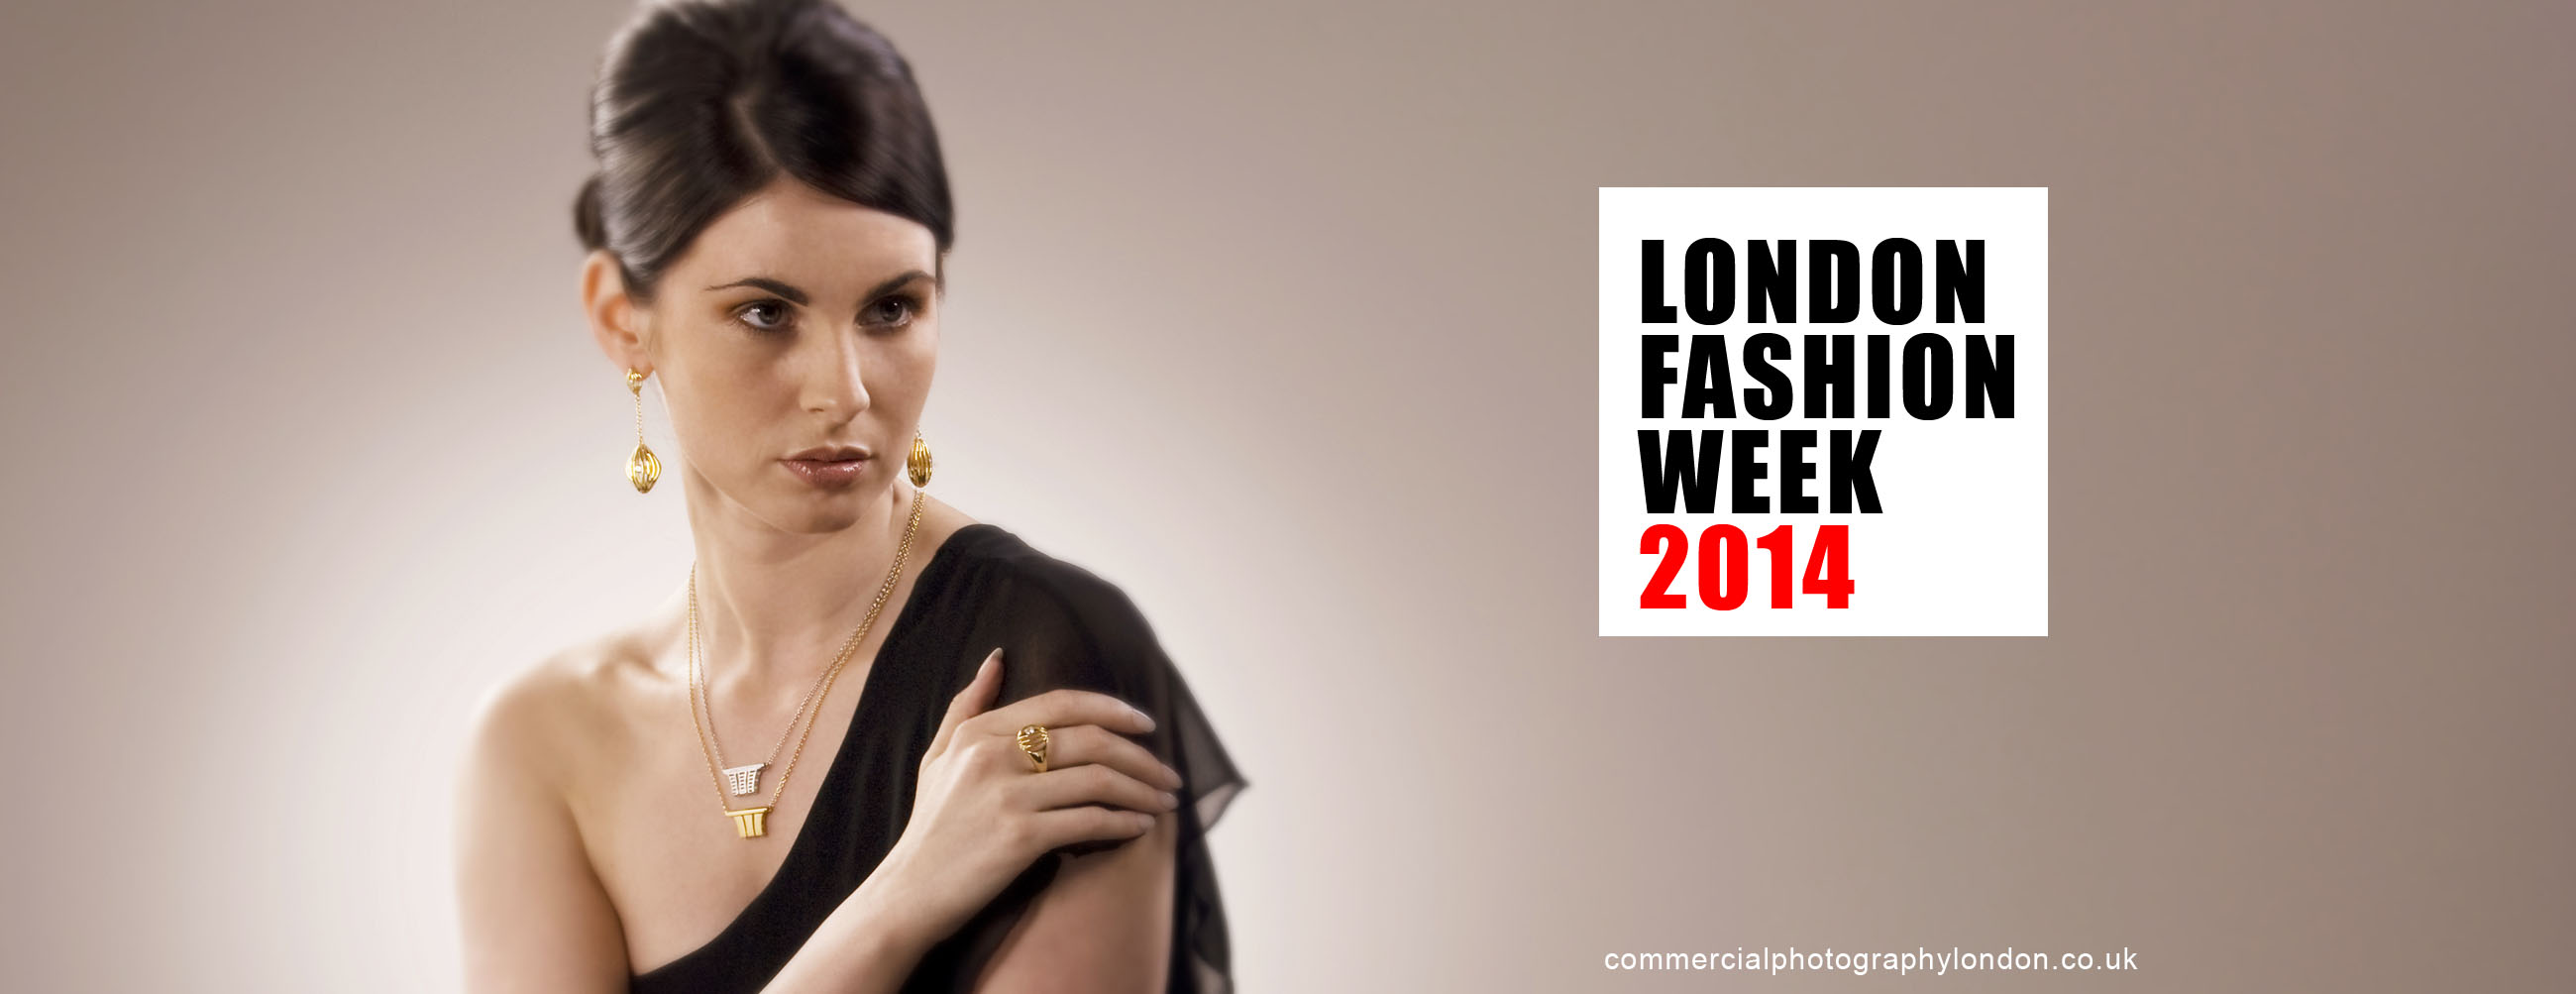 Advertising Photographer London fashion photo 5